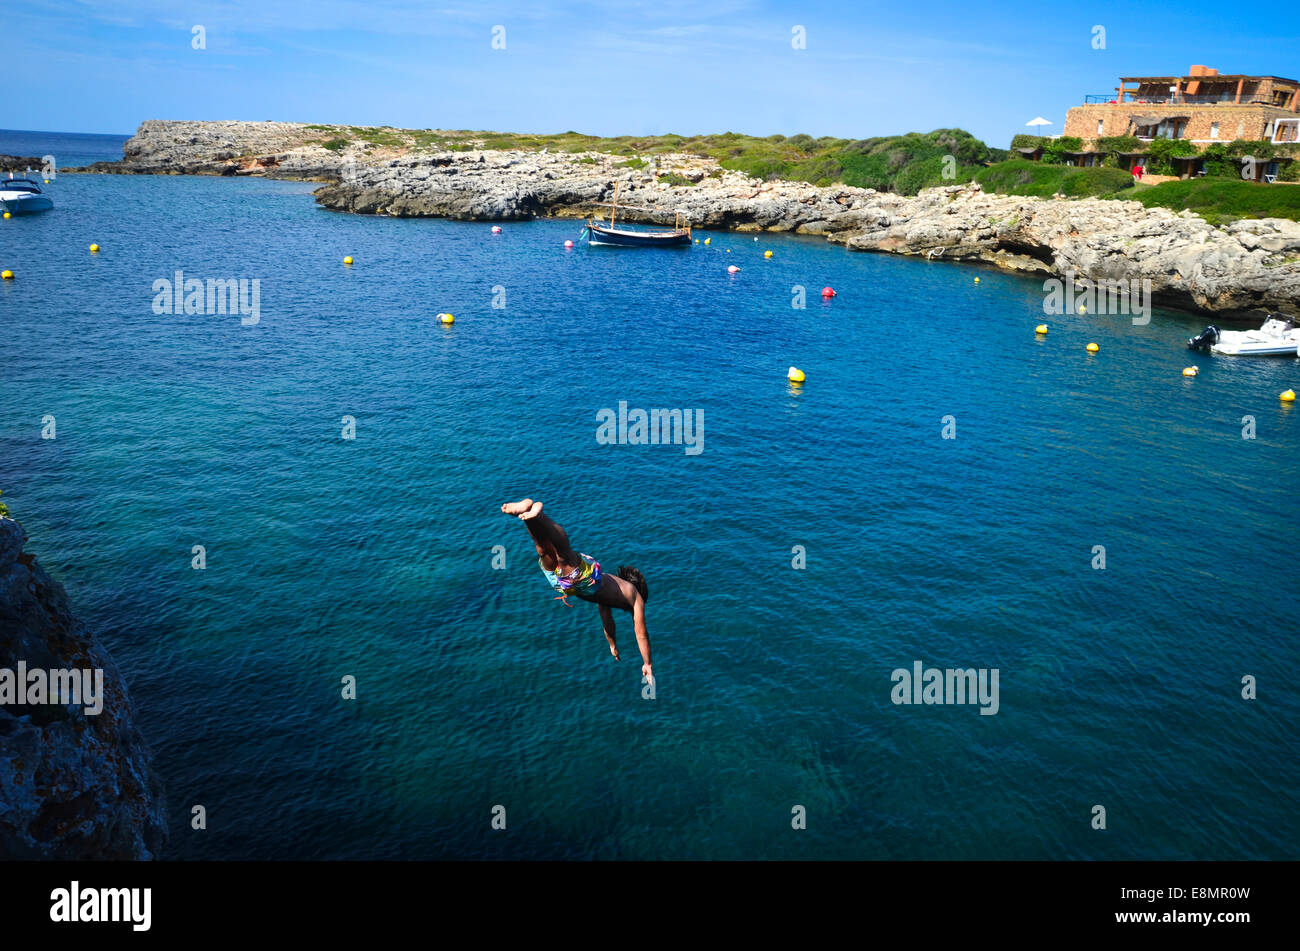 Cliff diving in the habour of the traditional small town of Binibequer Vell, on the Spanish island of Menorca, in - Stock Image